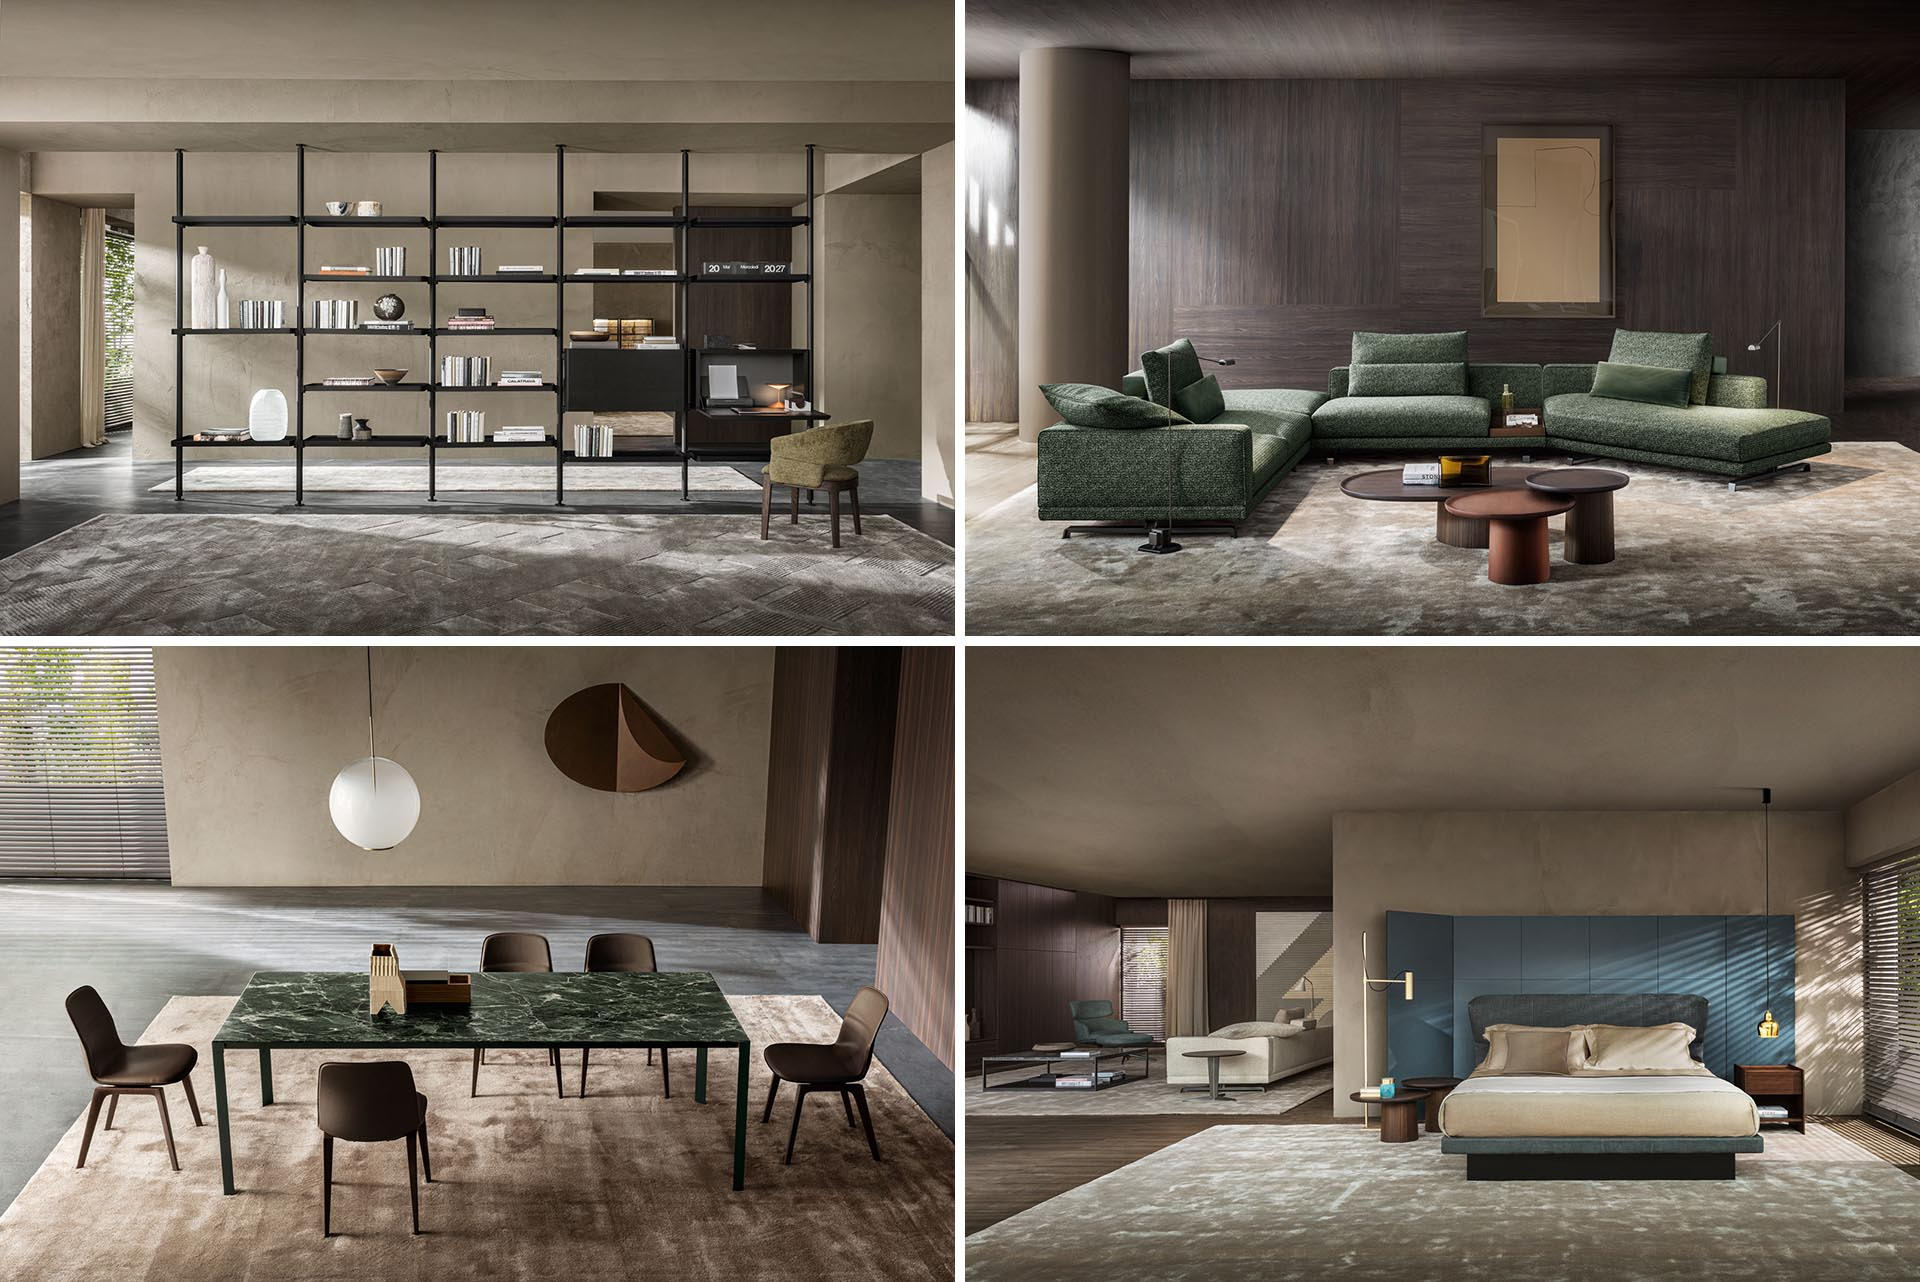 Modern furniture designs from Italian company Molteni&C.